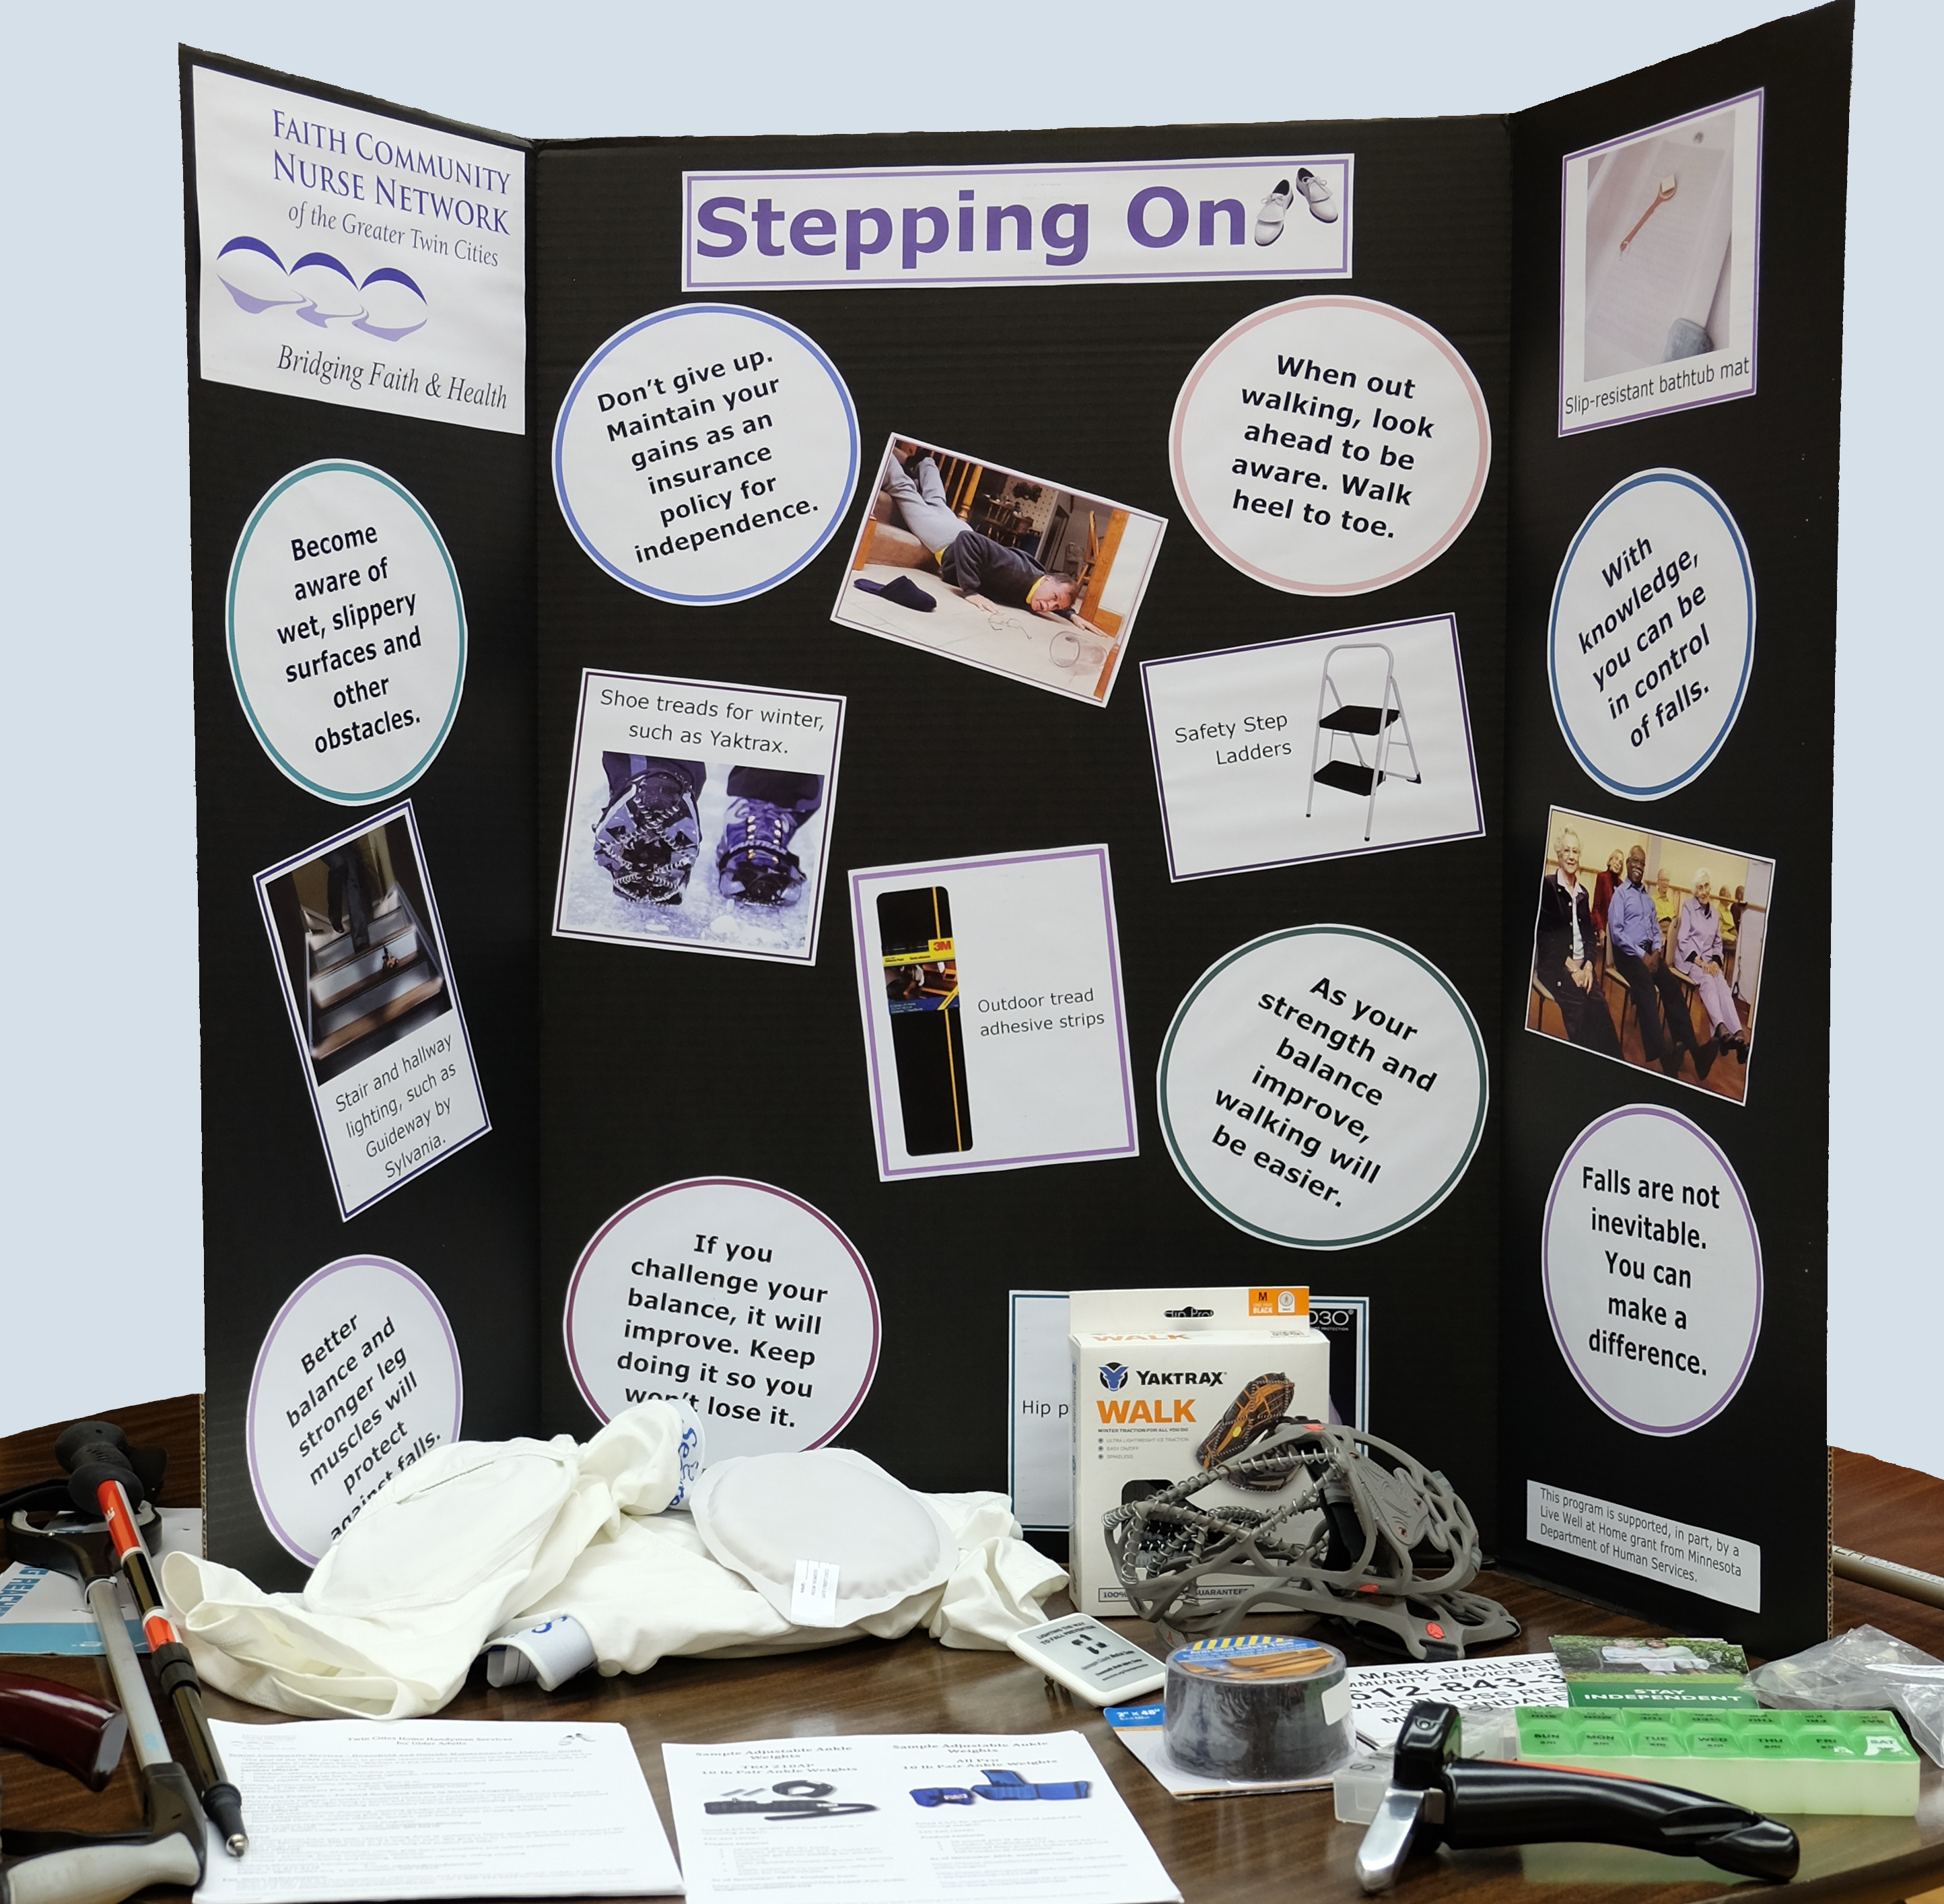 Image of Stepping On falls prevention workshop display board